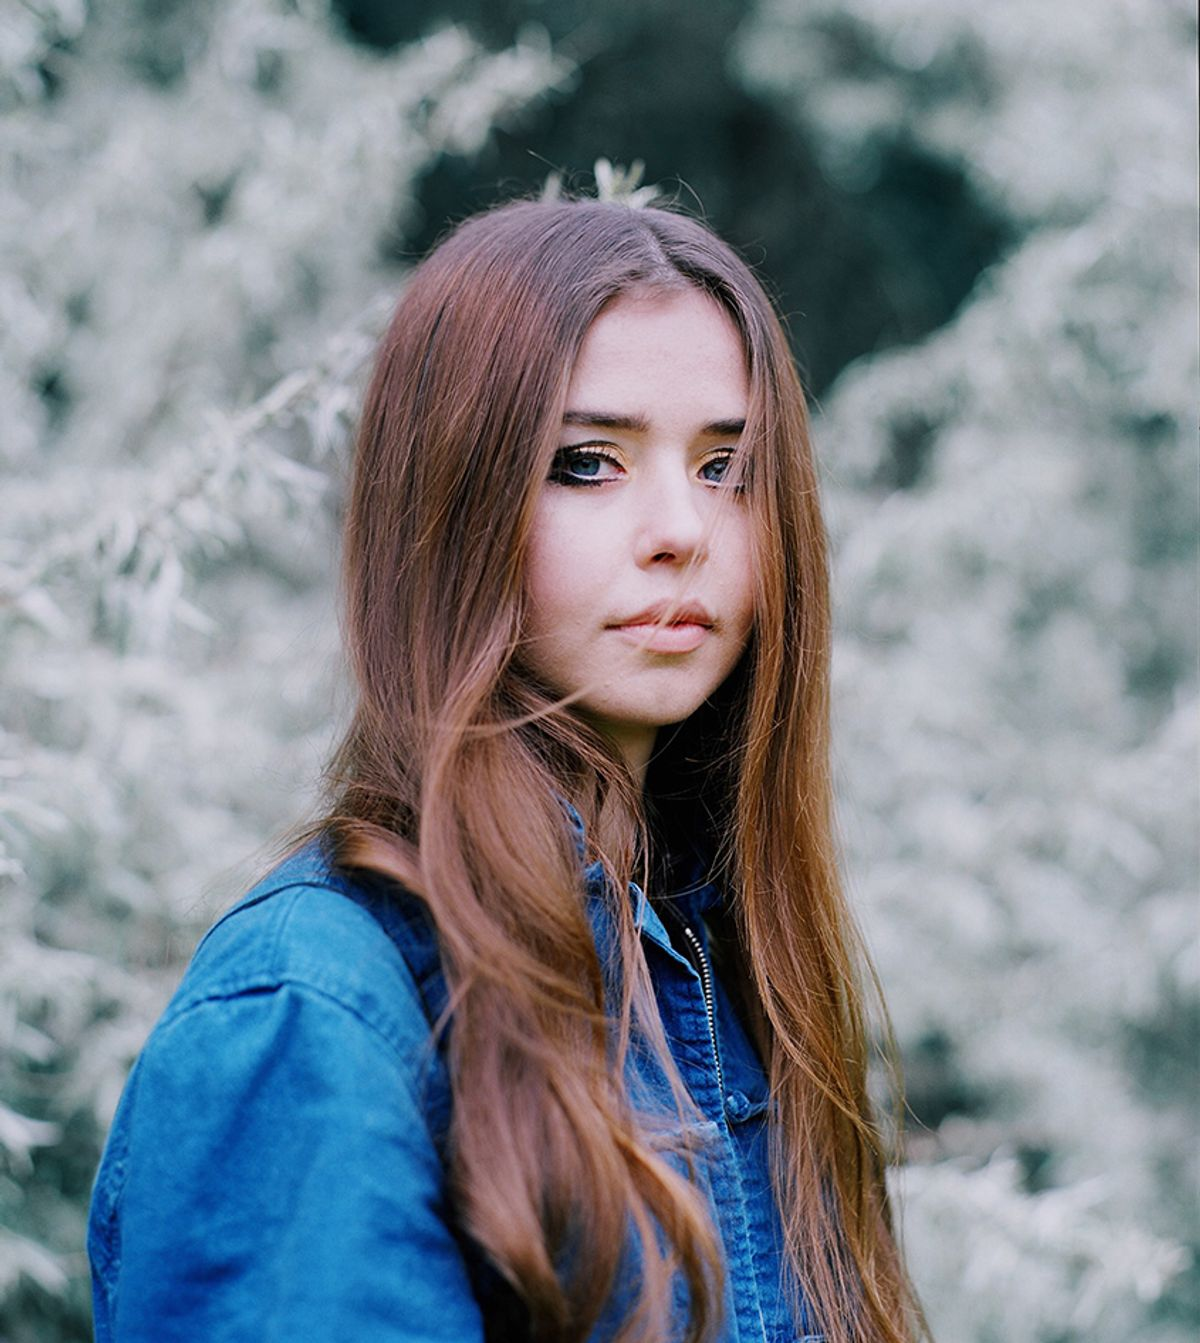 flo morrissey takes a page from '70s folk and spins gold